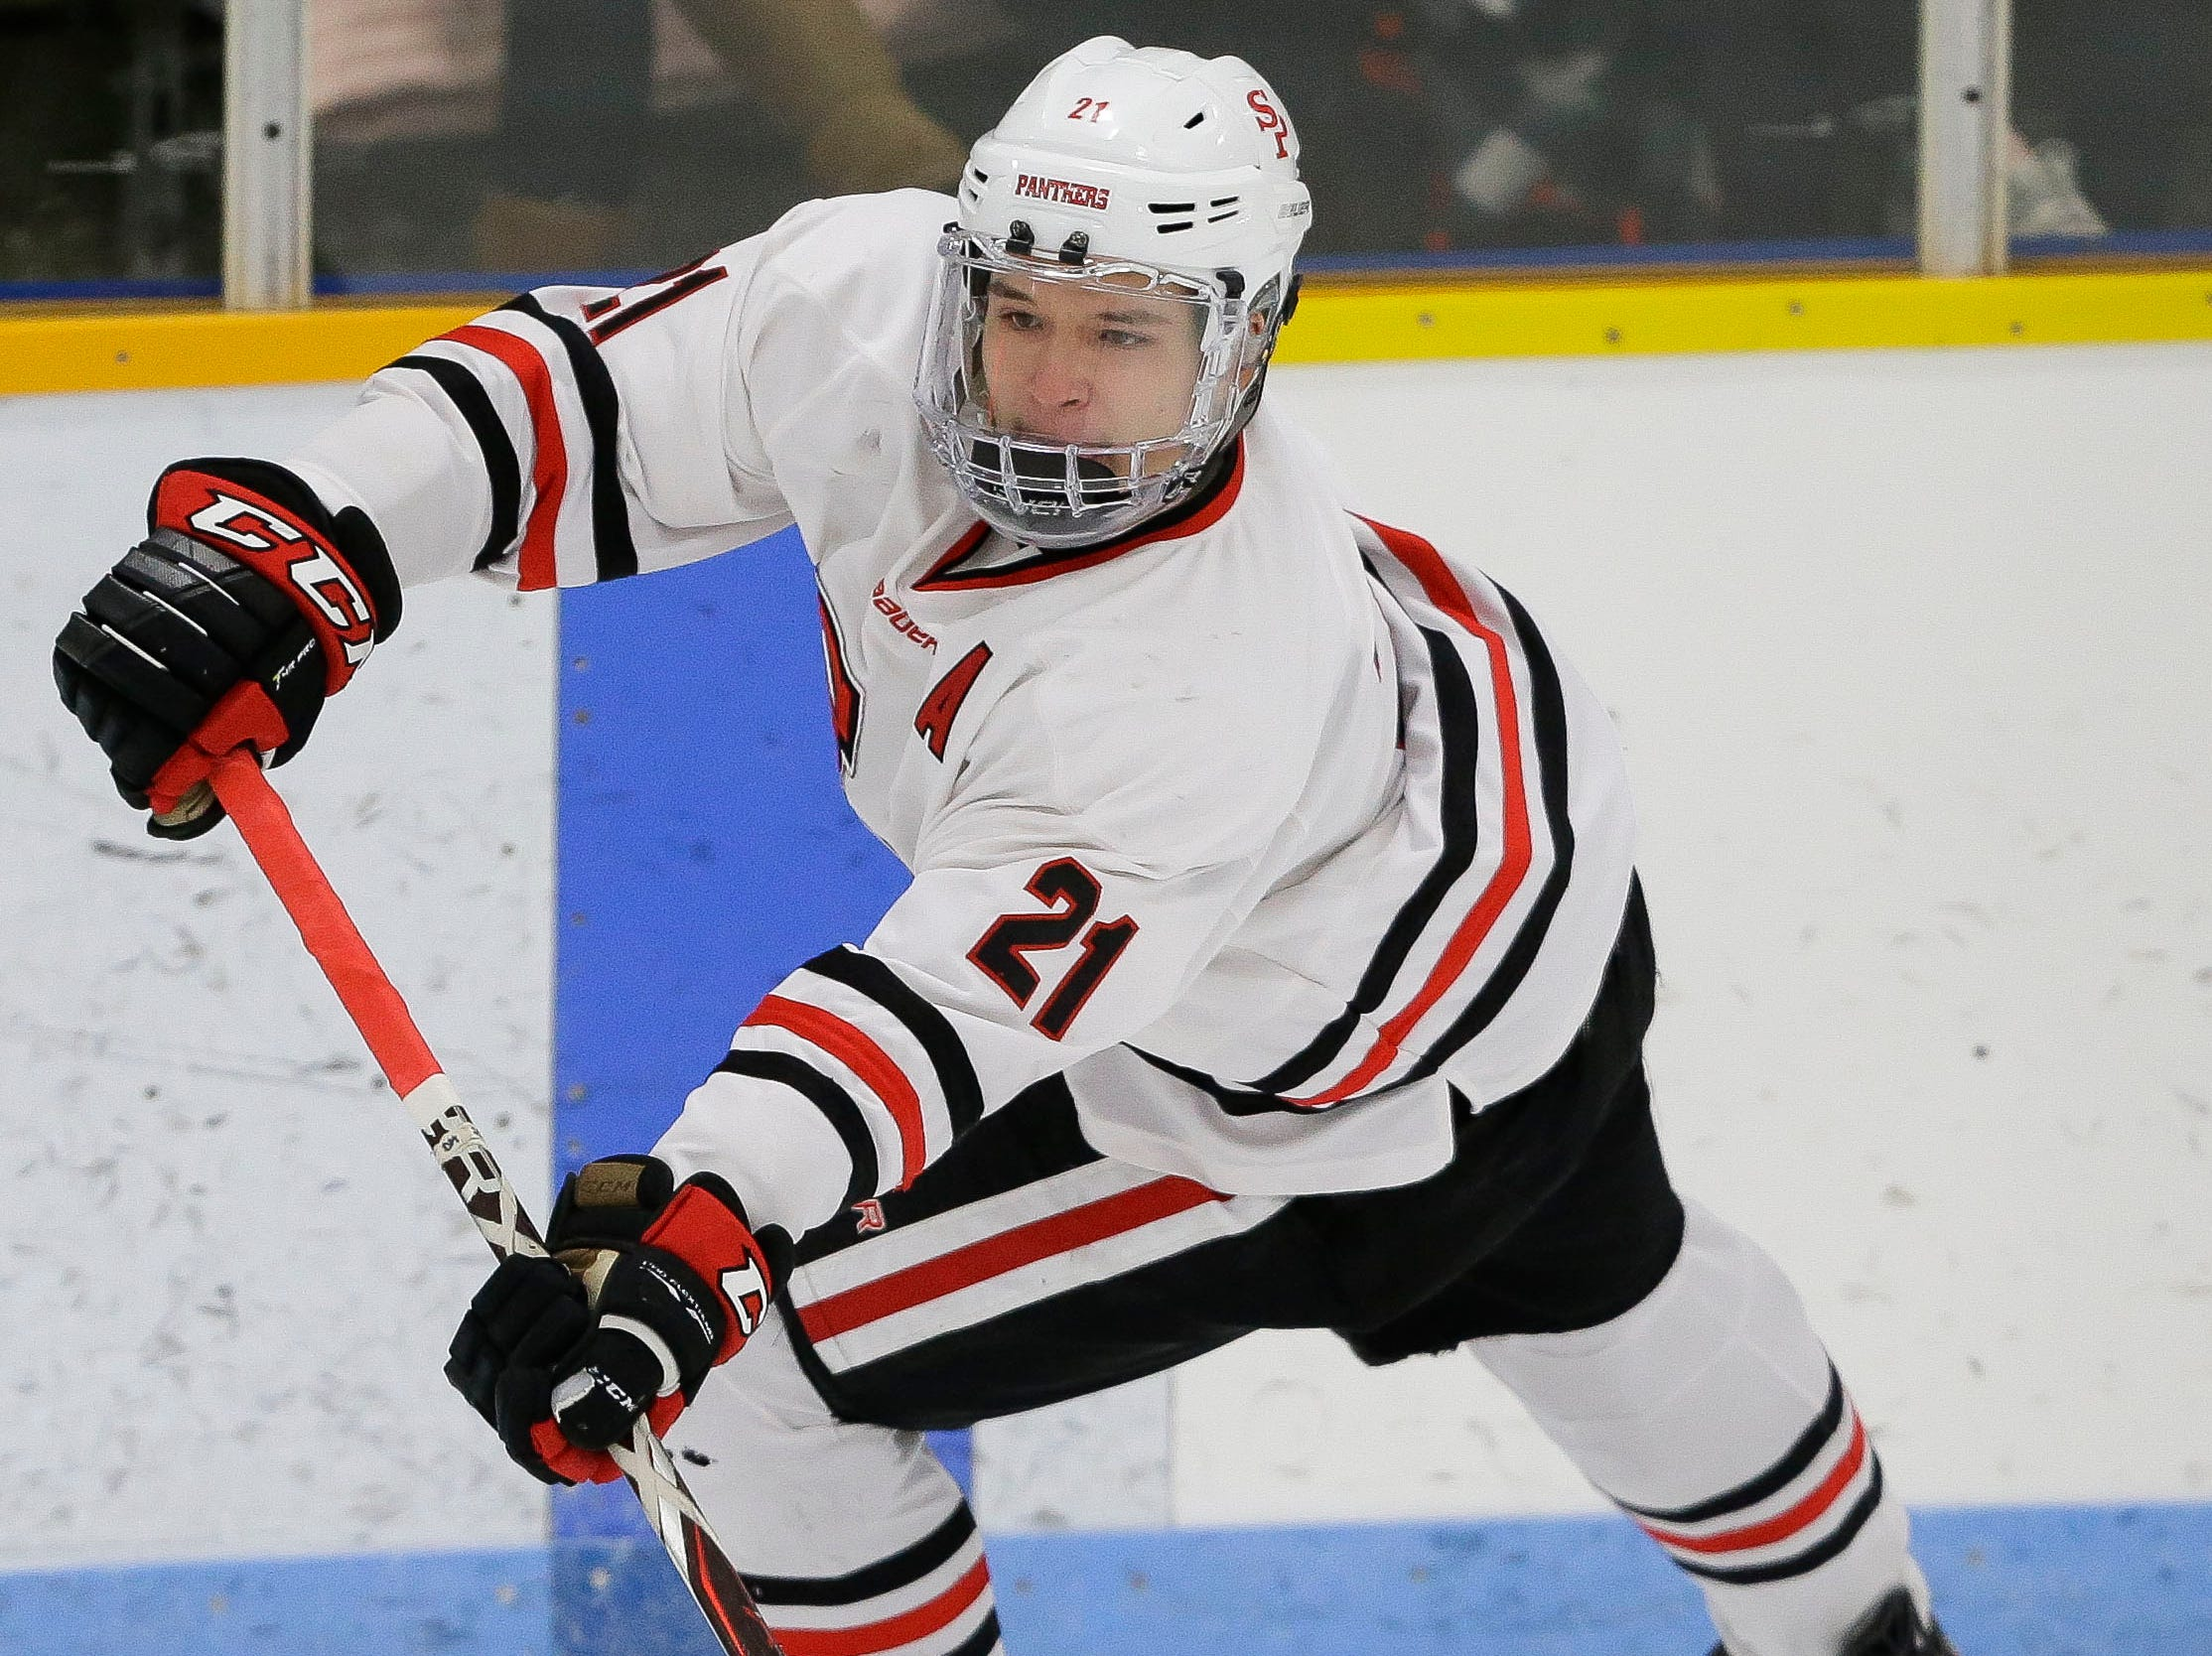 SPASH's Jake Minch (21) passes the puck against Verona on Saturday, January 26, 2019, at K.B. Willett Ice Arena in Stevens Point, Wis. Tork Mason/USA TODAY NETWORK-Wisconsin